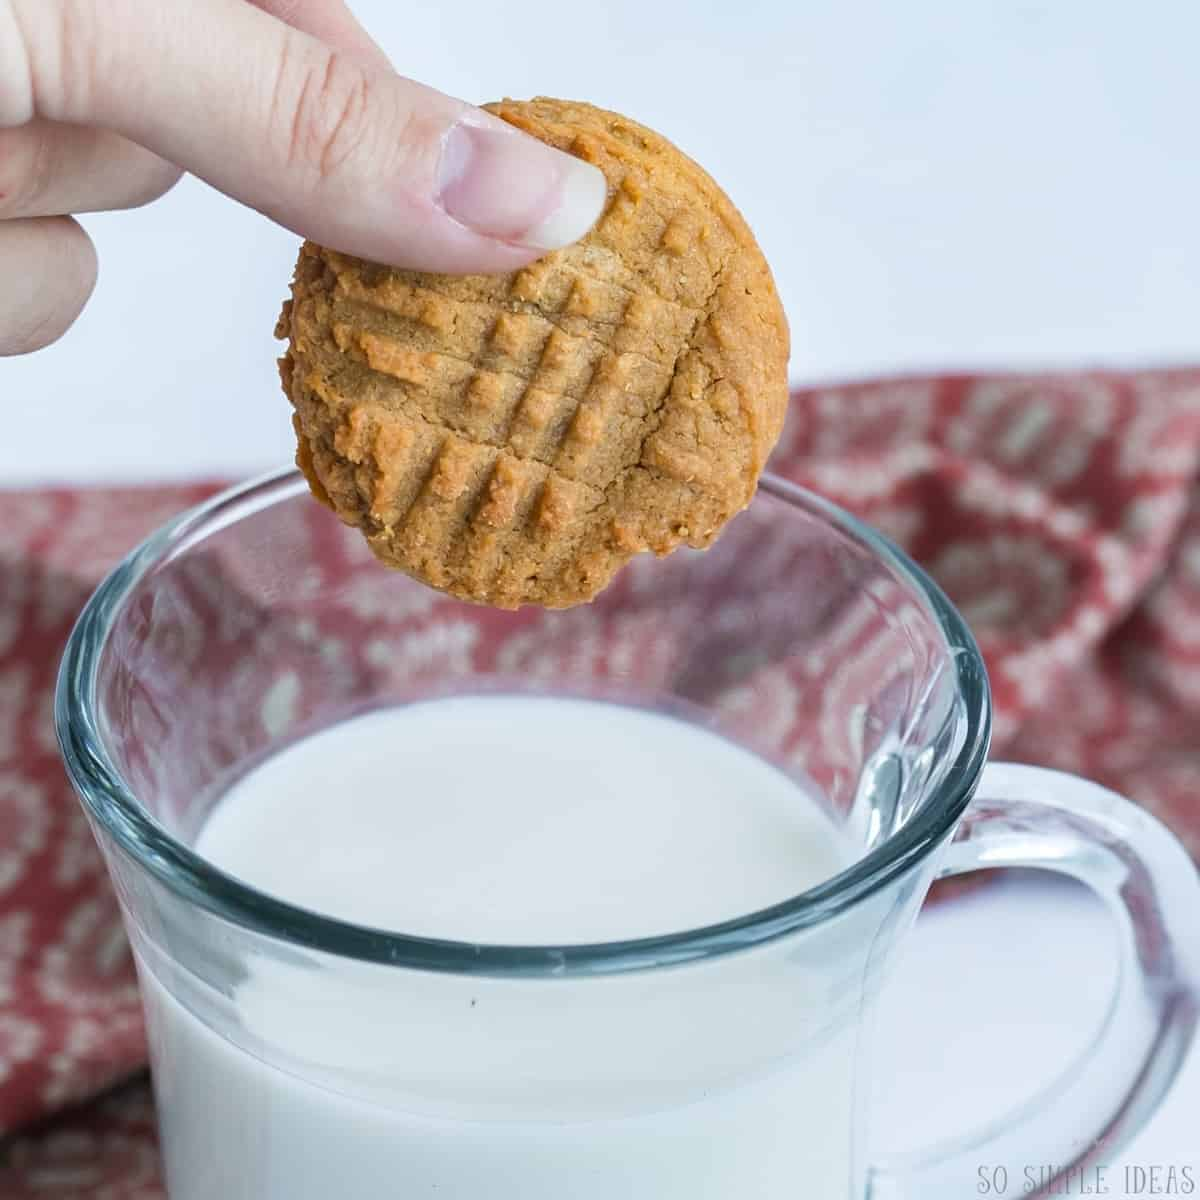 dipping cookie in milk